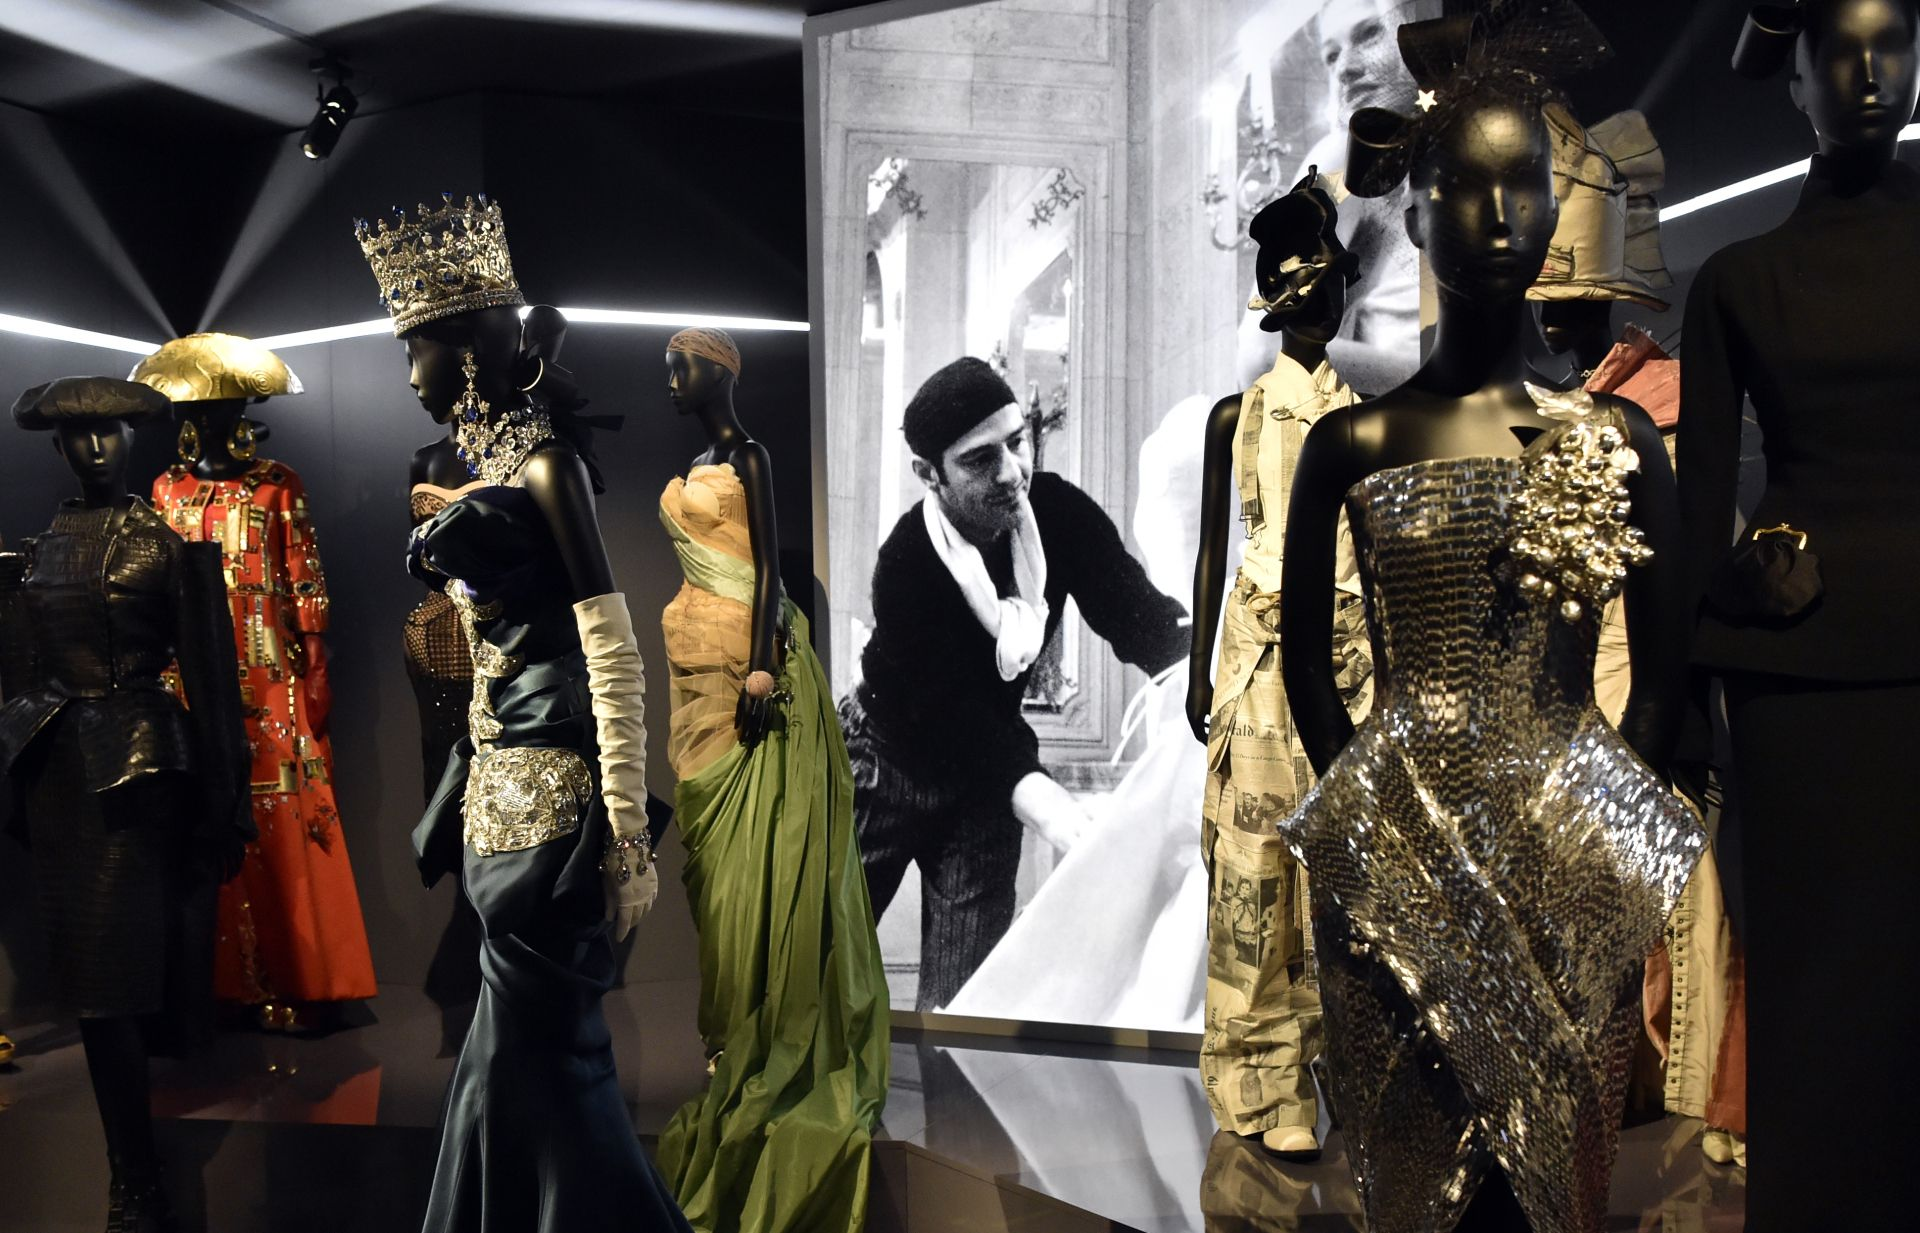 Dresses by British fashion designer John Galliano (whose picture is seen behind) are pictured during the Dior exhibition that celebrates the seventieth anniversary of the Christian Dior fashion house on July 3, 2017 in Paris. - The exhibition at the Museum of Decorative Arts (Musee des Arts Decoratifs) is a retrospective presenting some 400 dresses, and runs through July 5, 2017 - January 7, 2018. (Photo by ALAIN JOCARD / AFP)